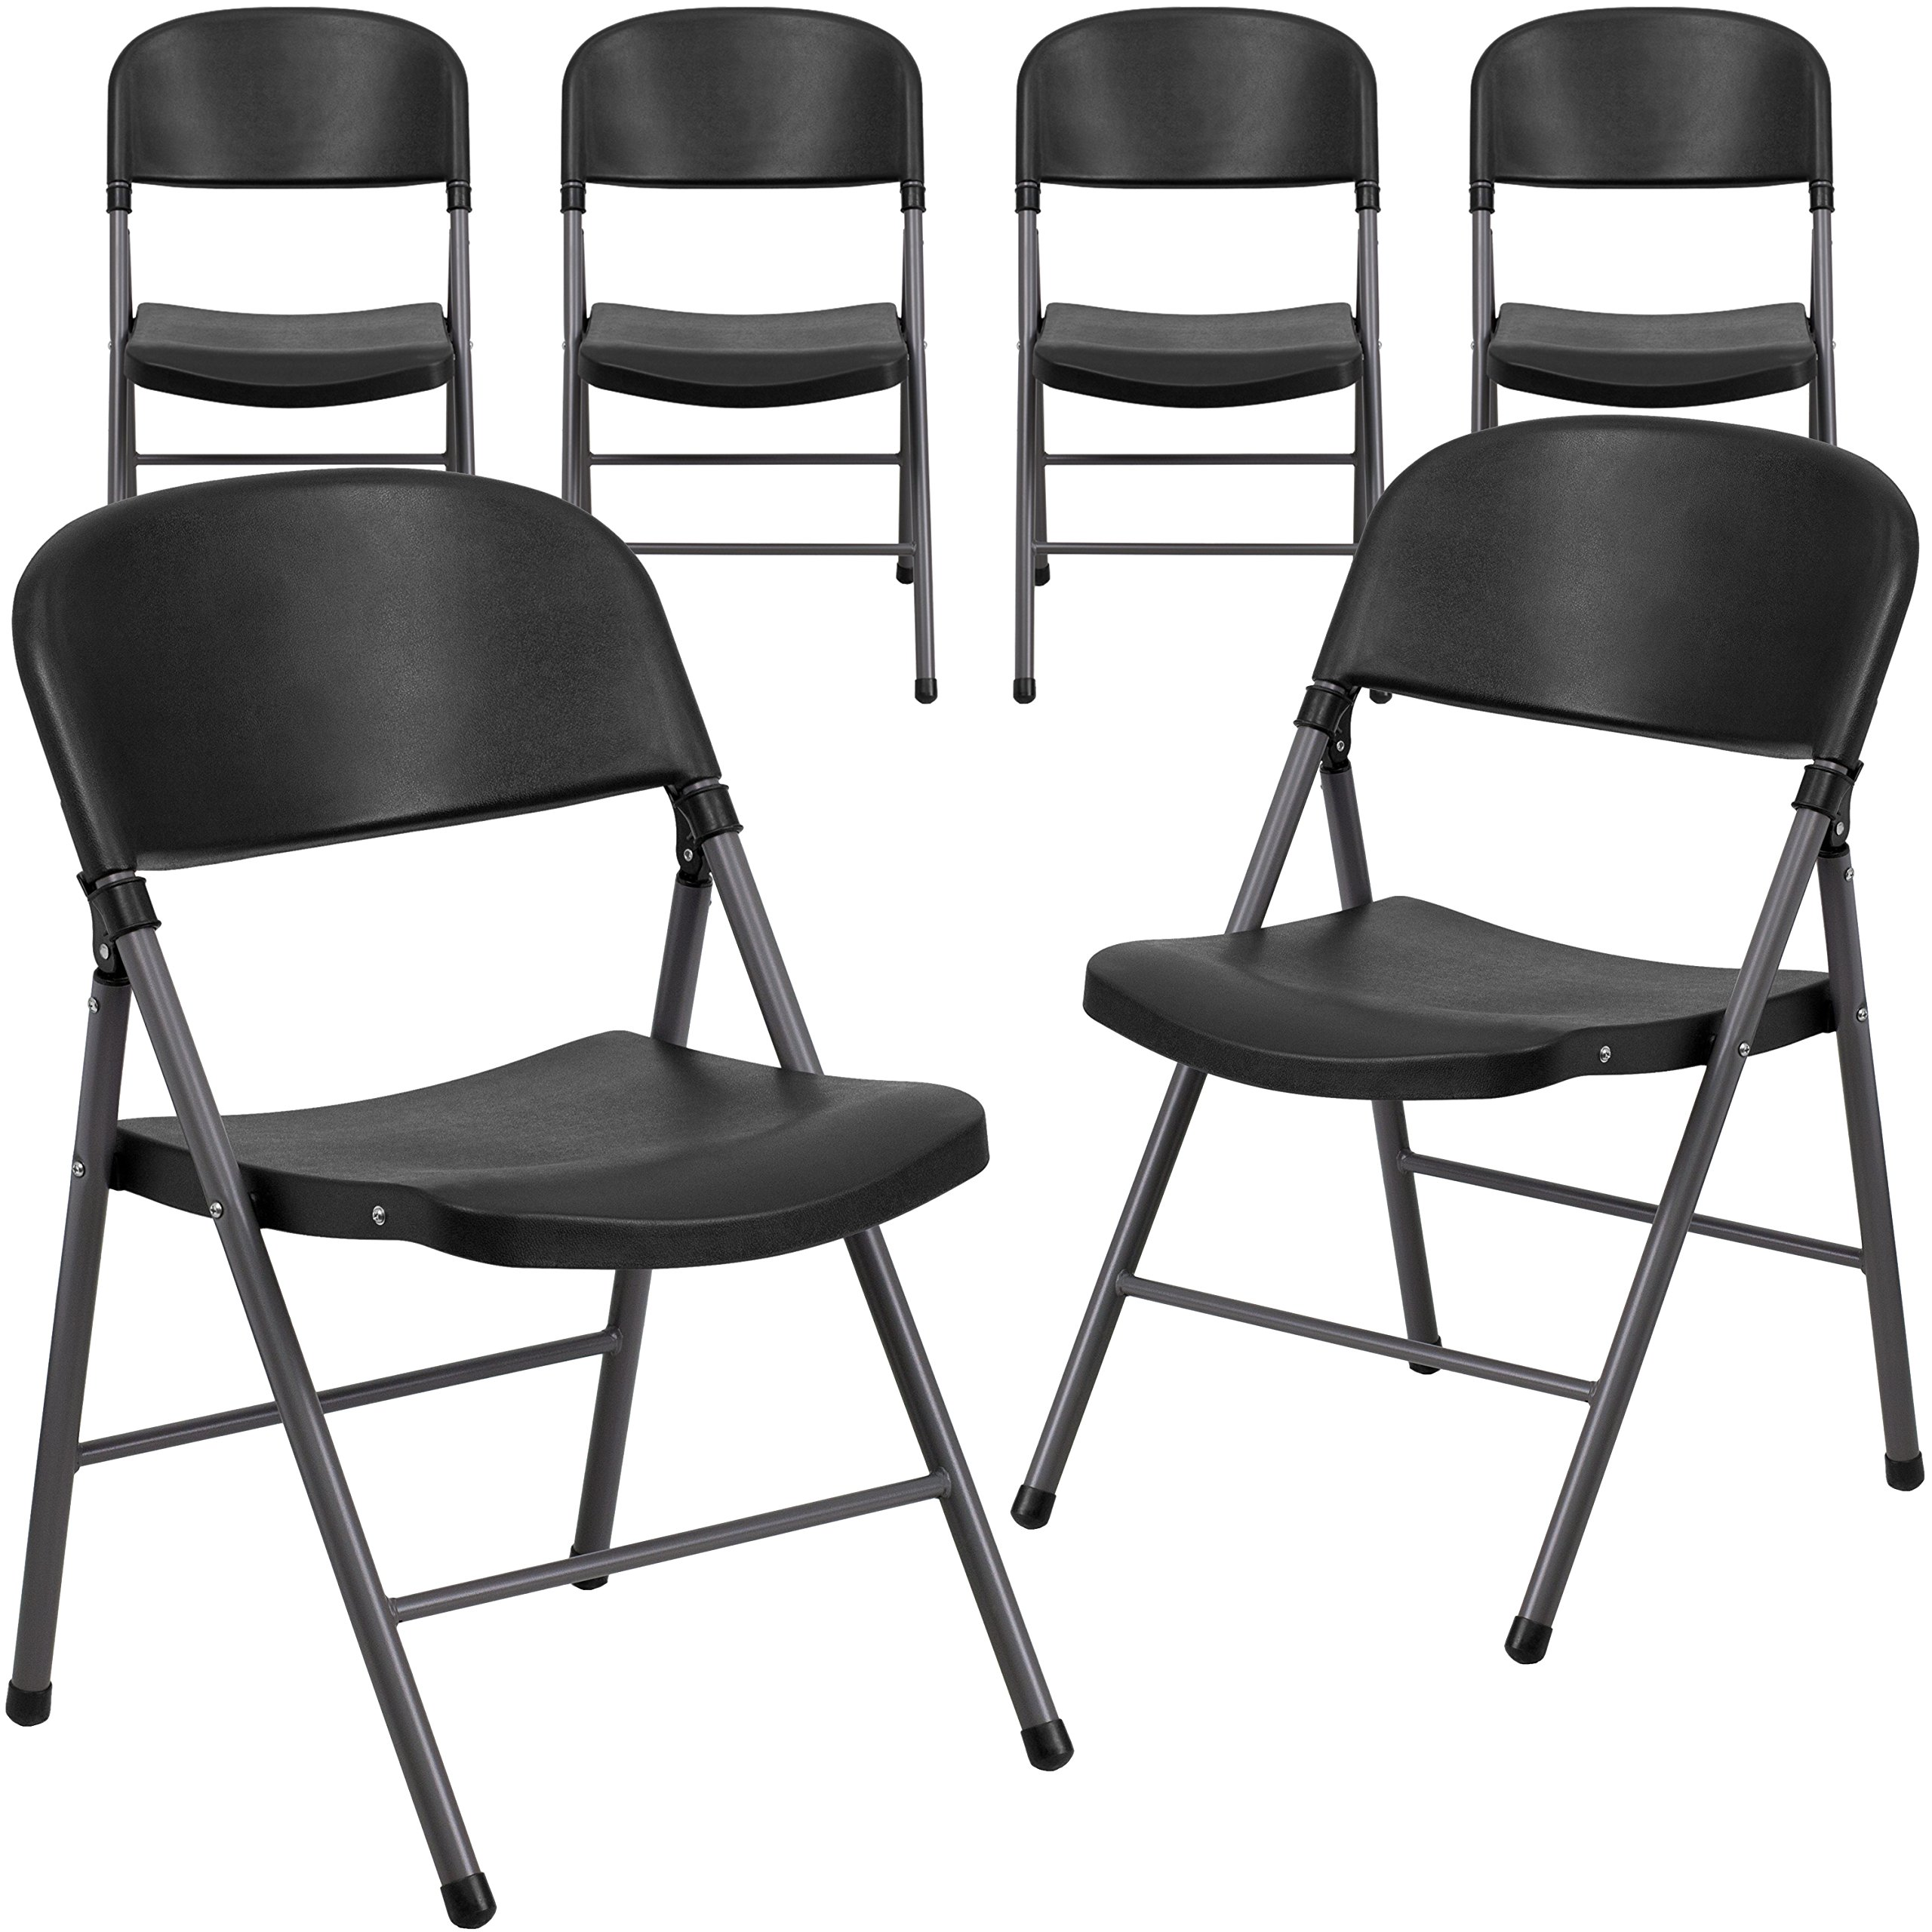 Flash Furniture 6 Pk. HERCULES Series 330 lb. Capacity Black Plastic Folding Chair with Charcoal Frame by Flash Furniture